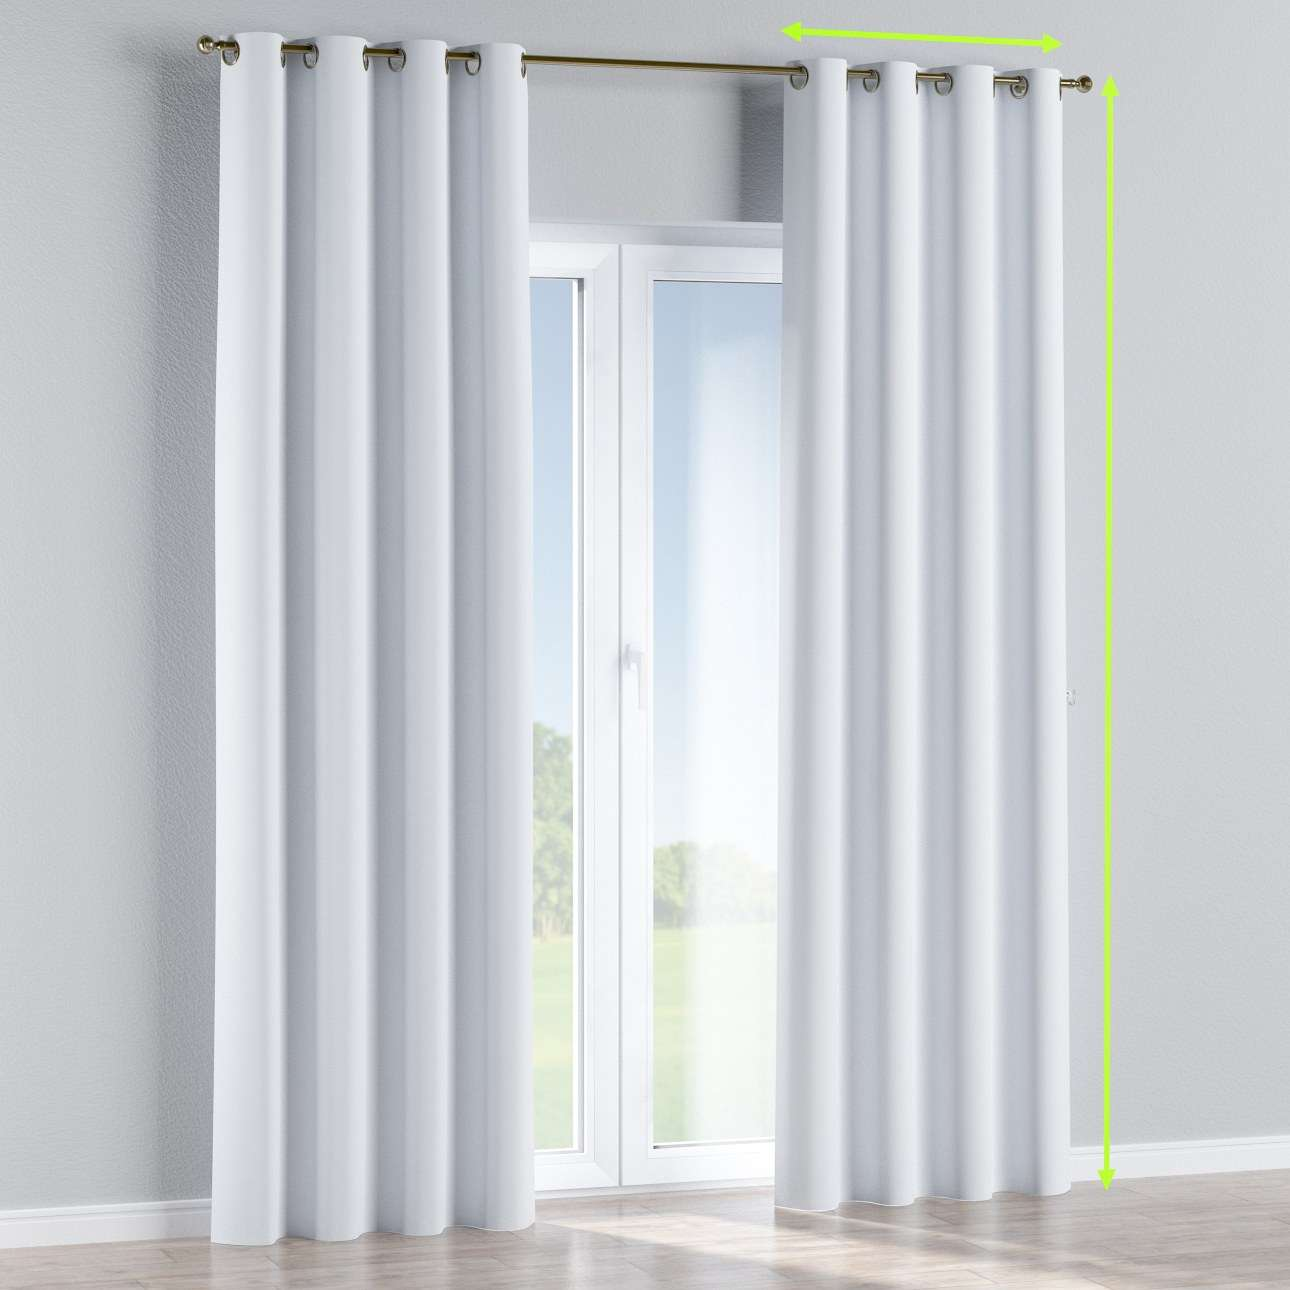 Blackout eyelet curtain in collection Blackout, fabric: 269-01